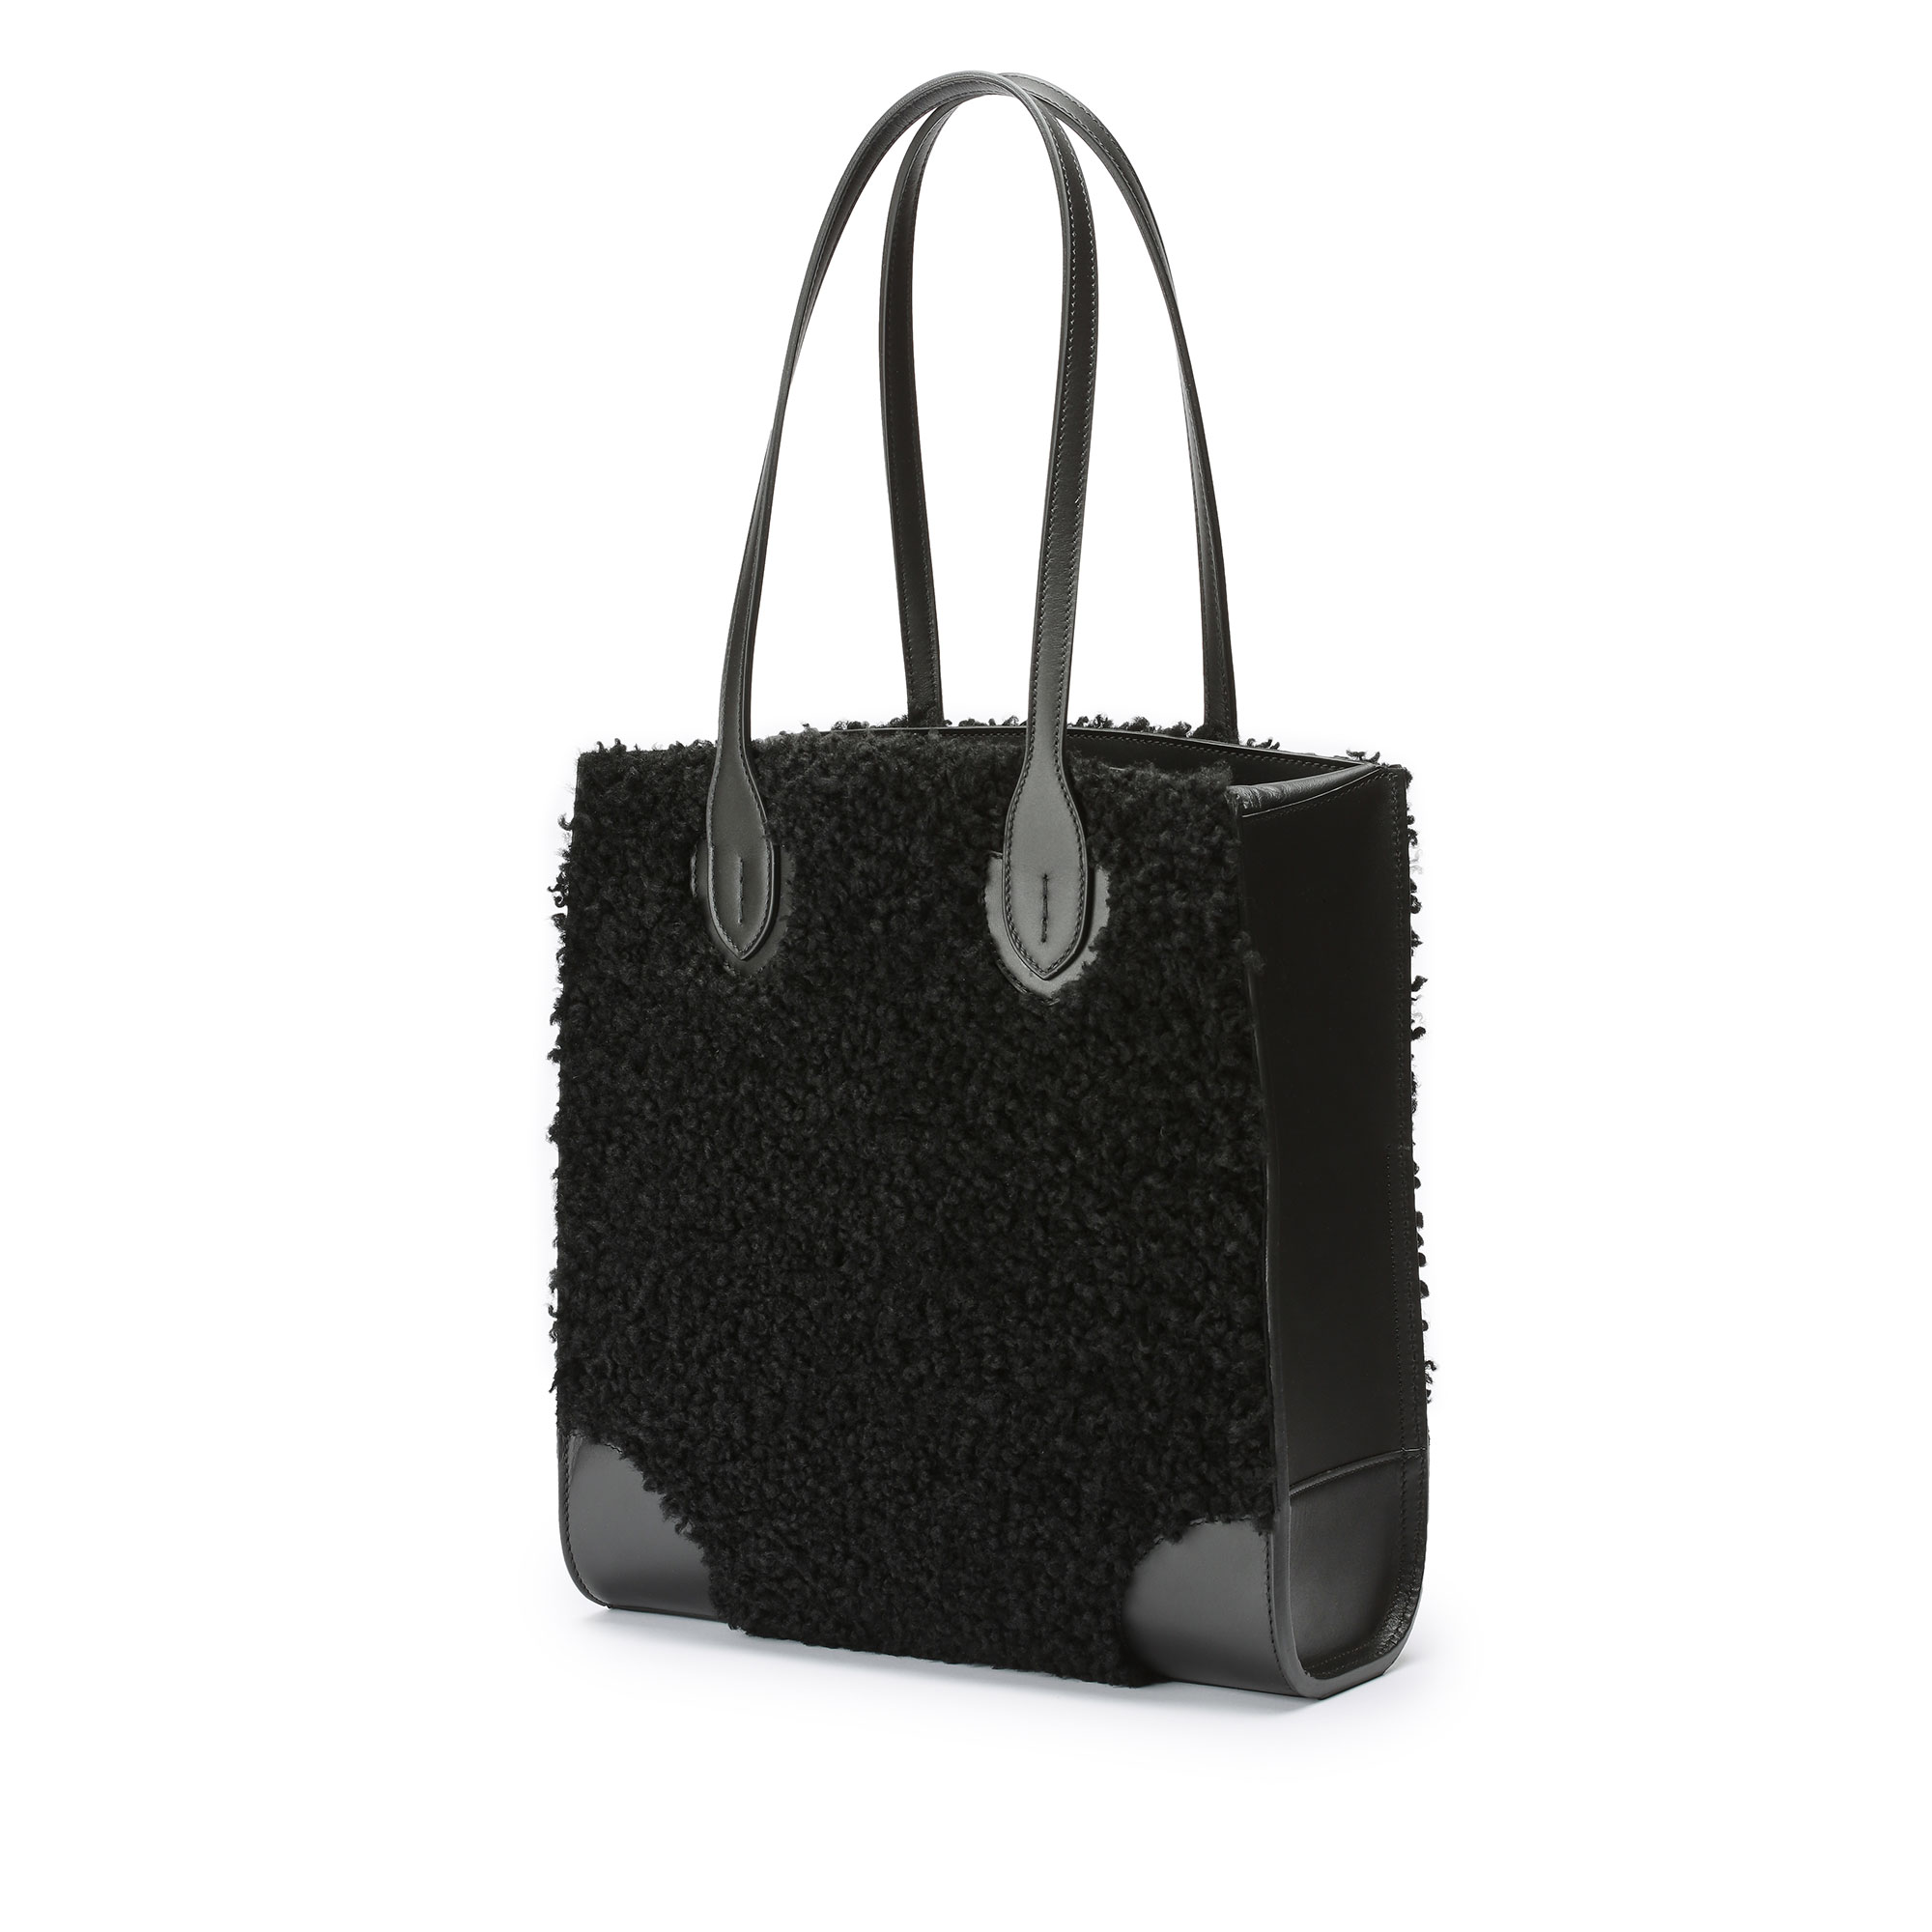 Darcy-Tote-black-shearling-bag-Bertoni-1949_01